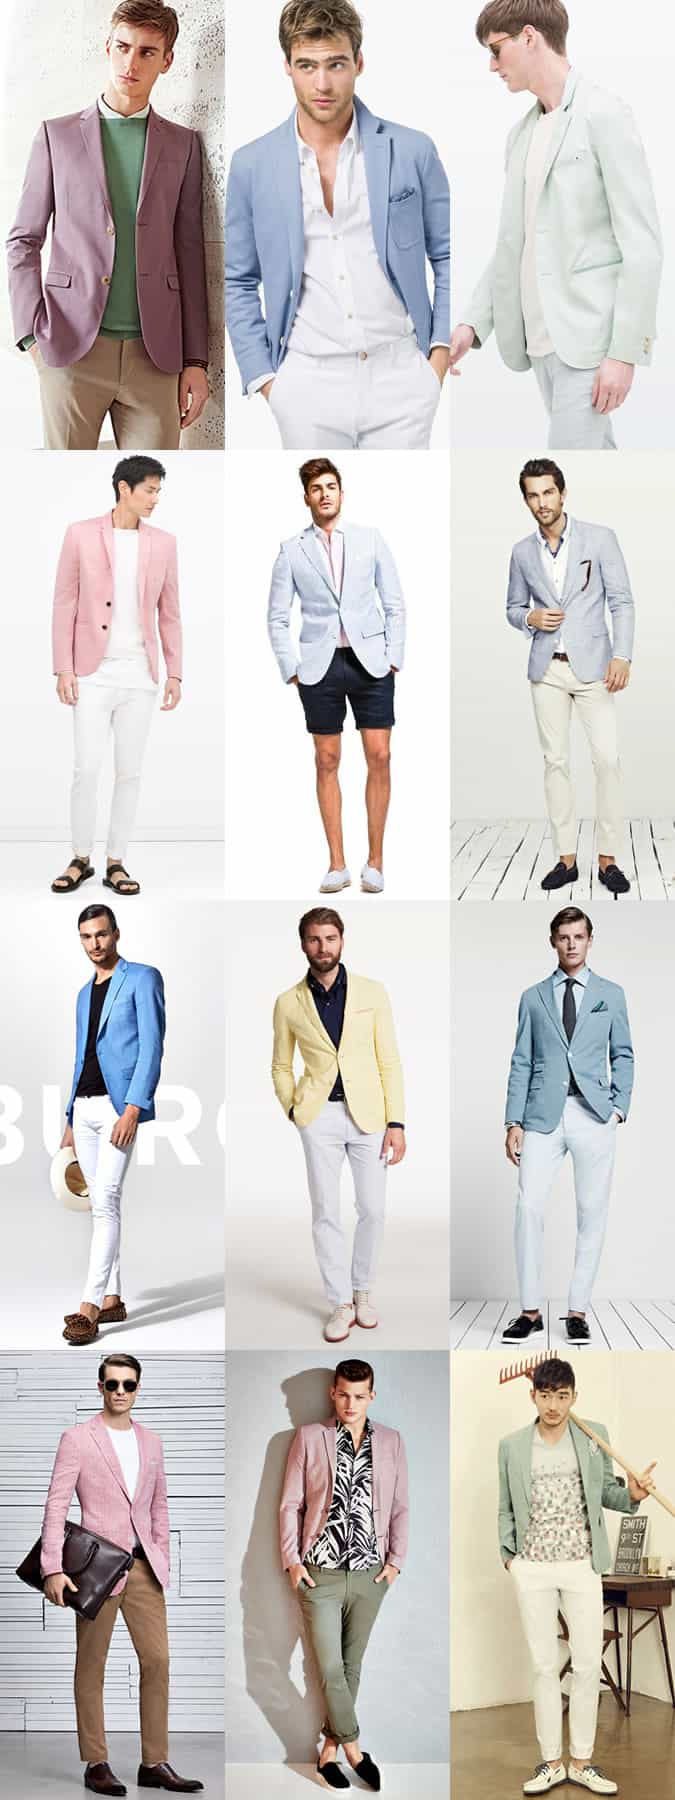 Men's Pastel Blazers Outfit Inspiration Lookbook